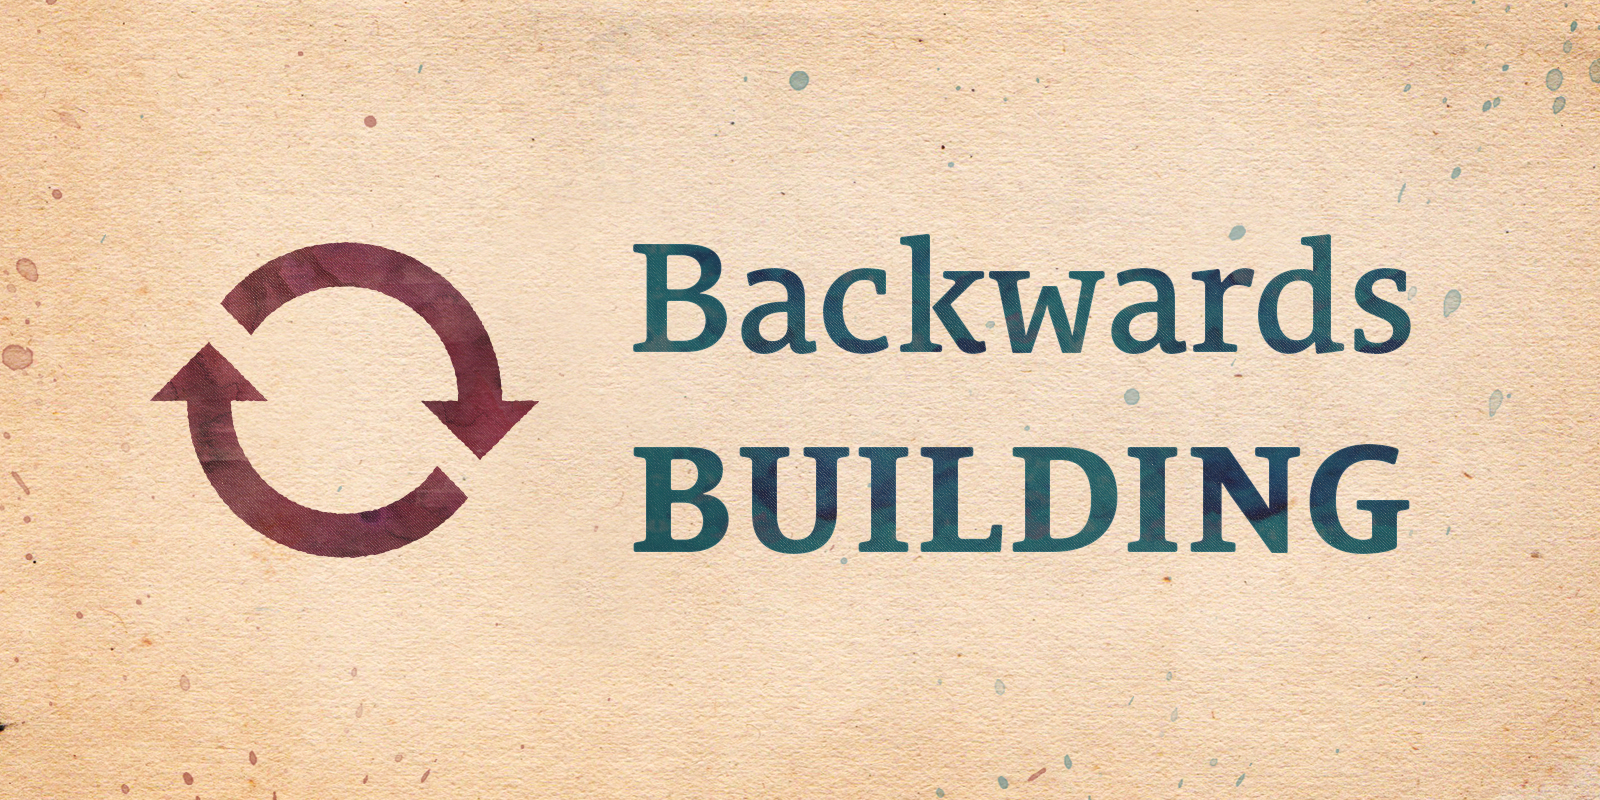 Backwards Building